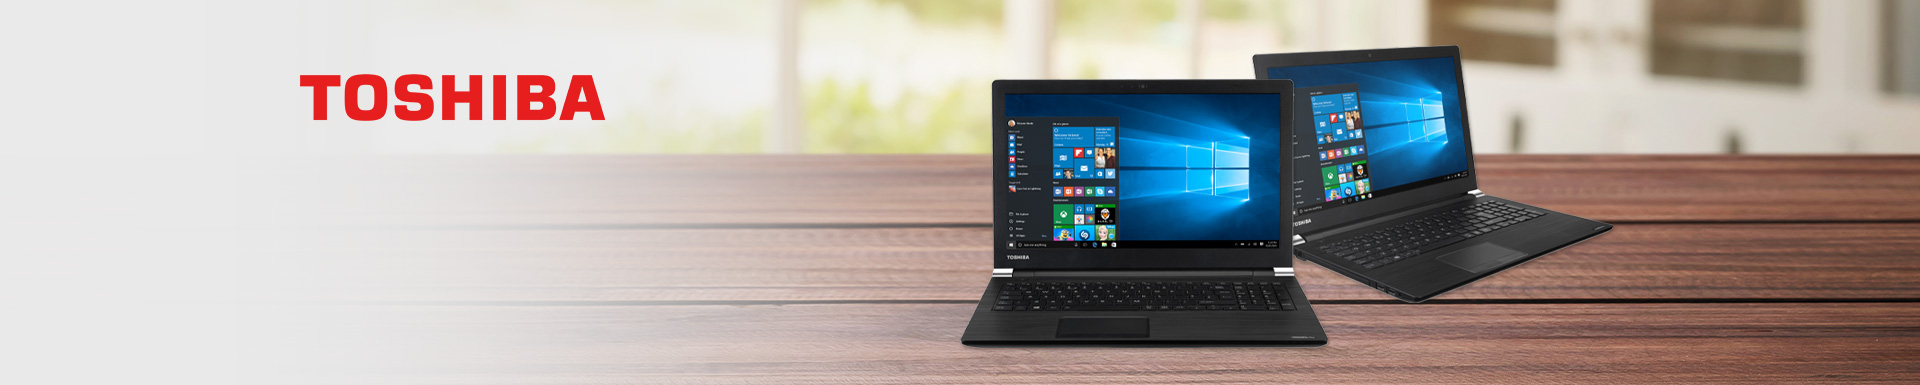 € 50,- korting op Toshiba Satellite Pro A50 notebooks